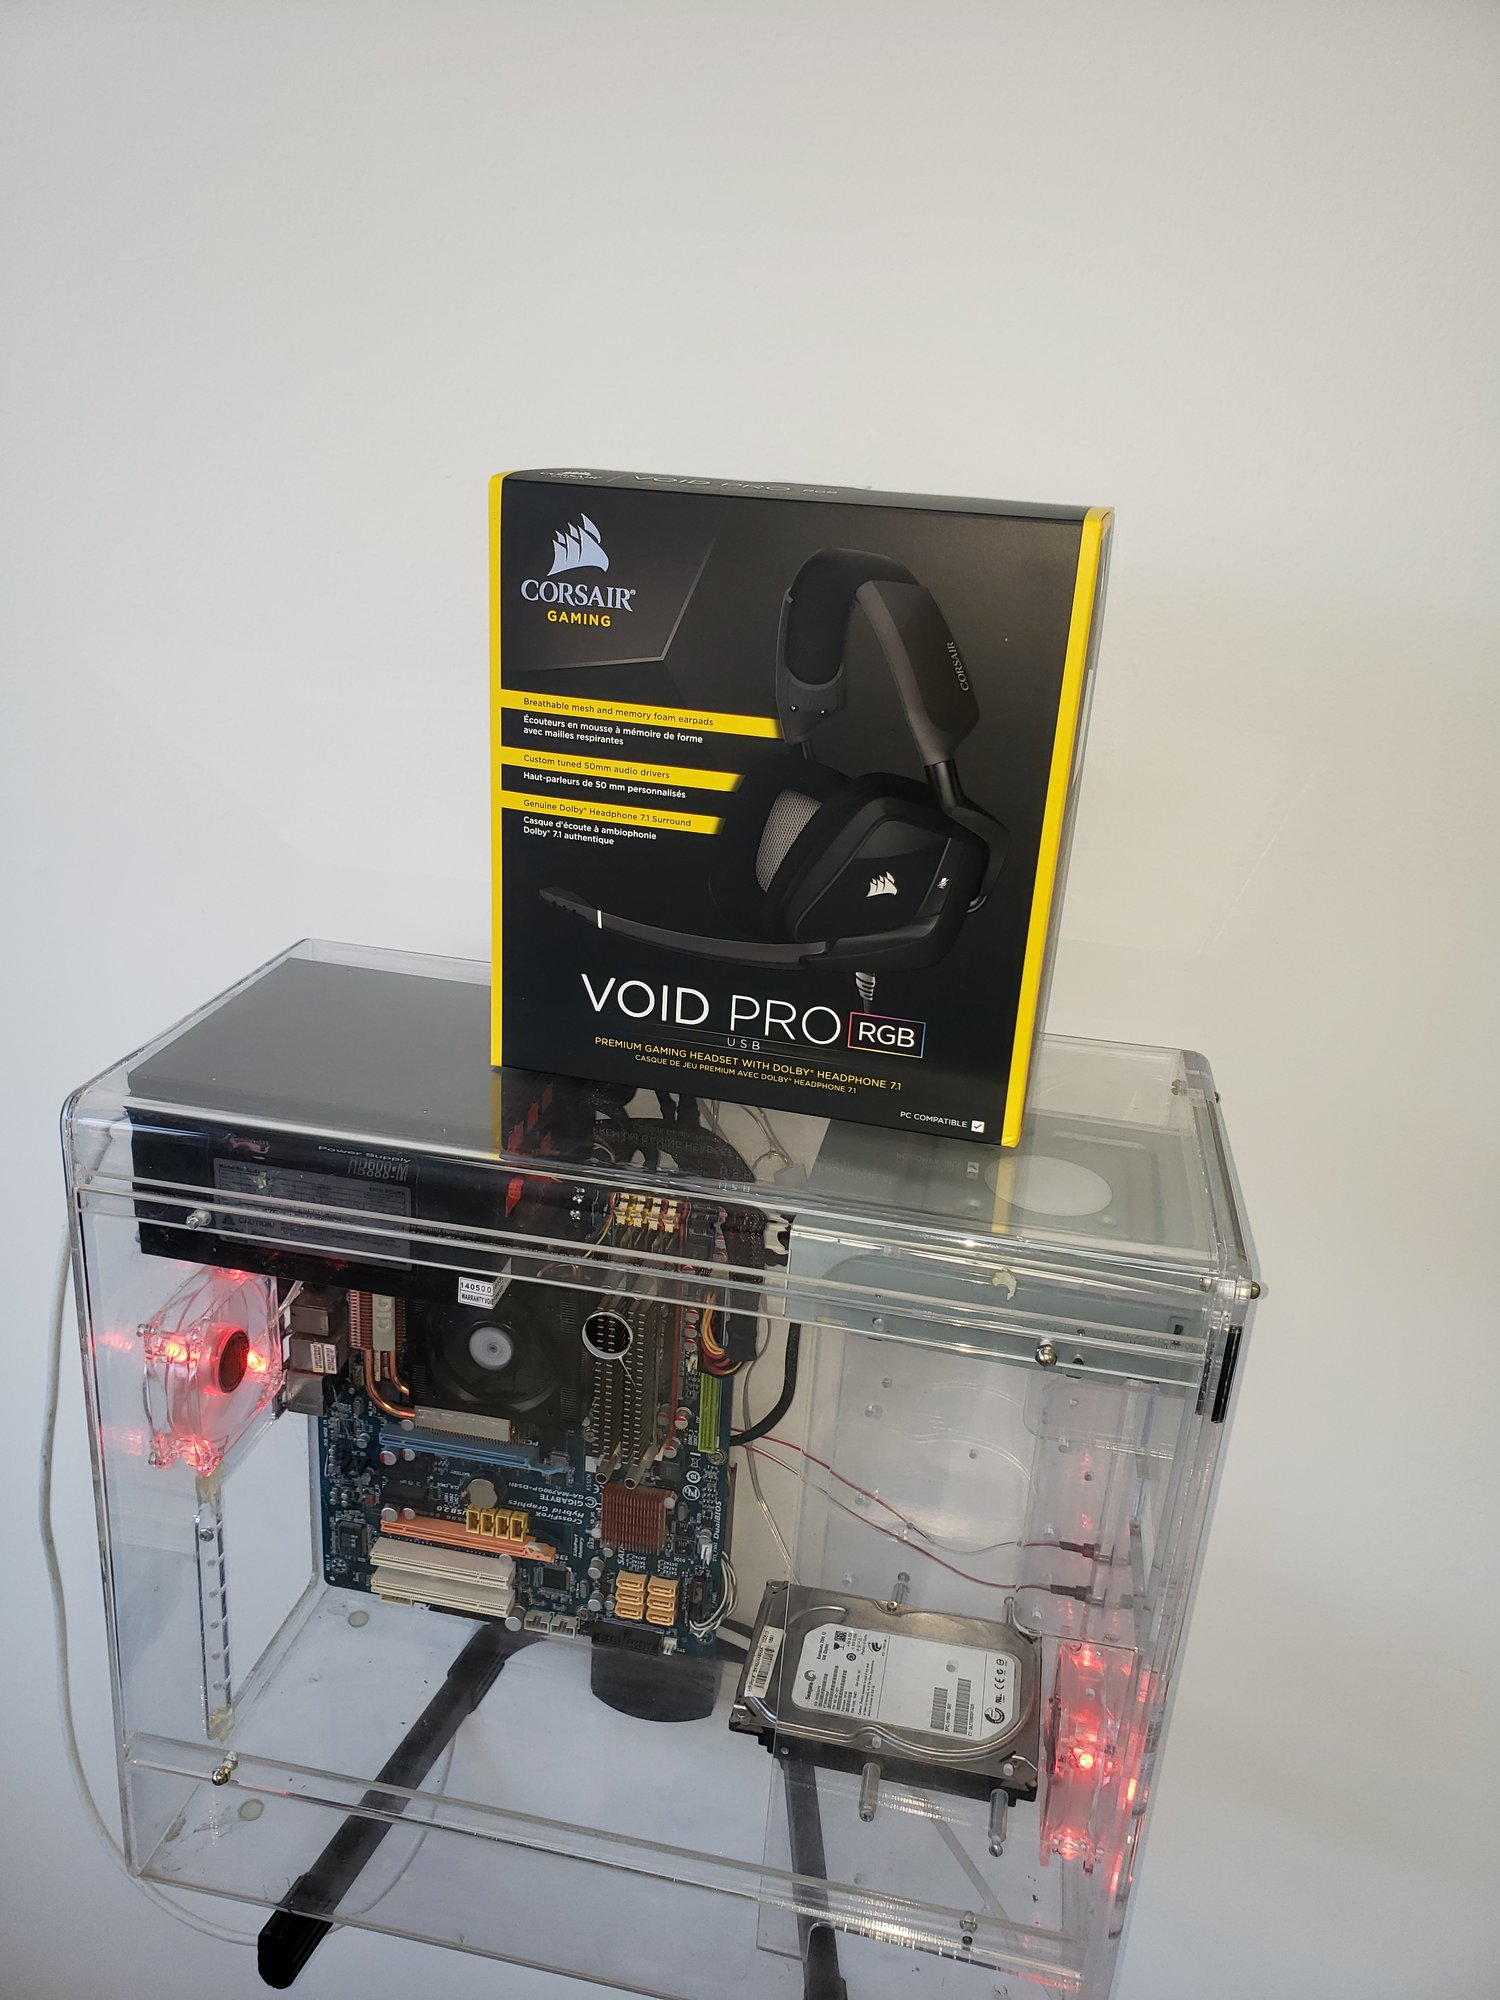 Corsair Void Pro Headset Sale at Newegg and Amazon | [H]ard